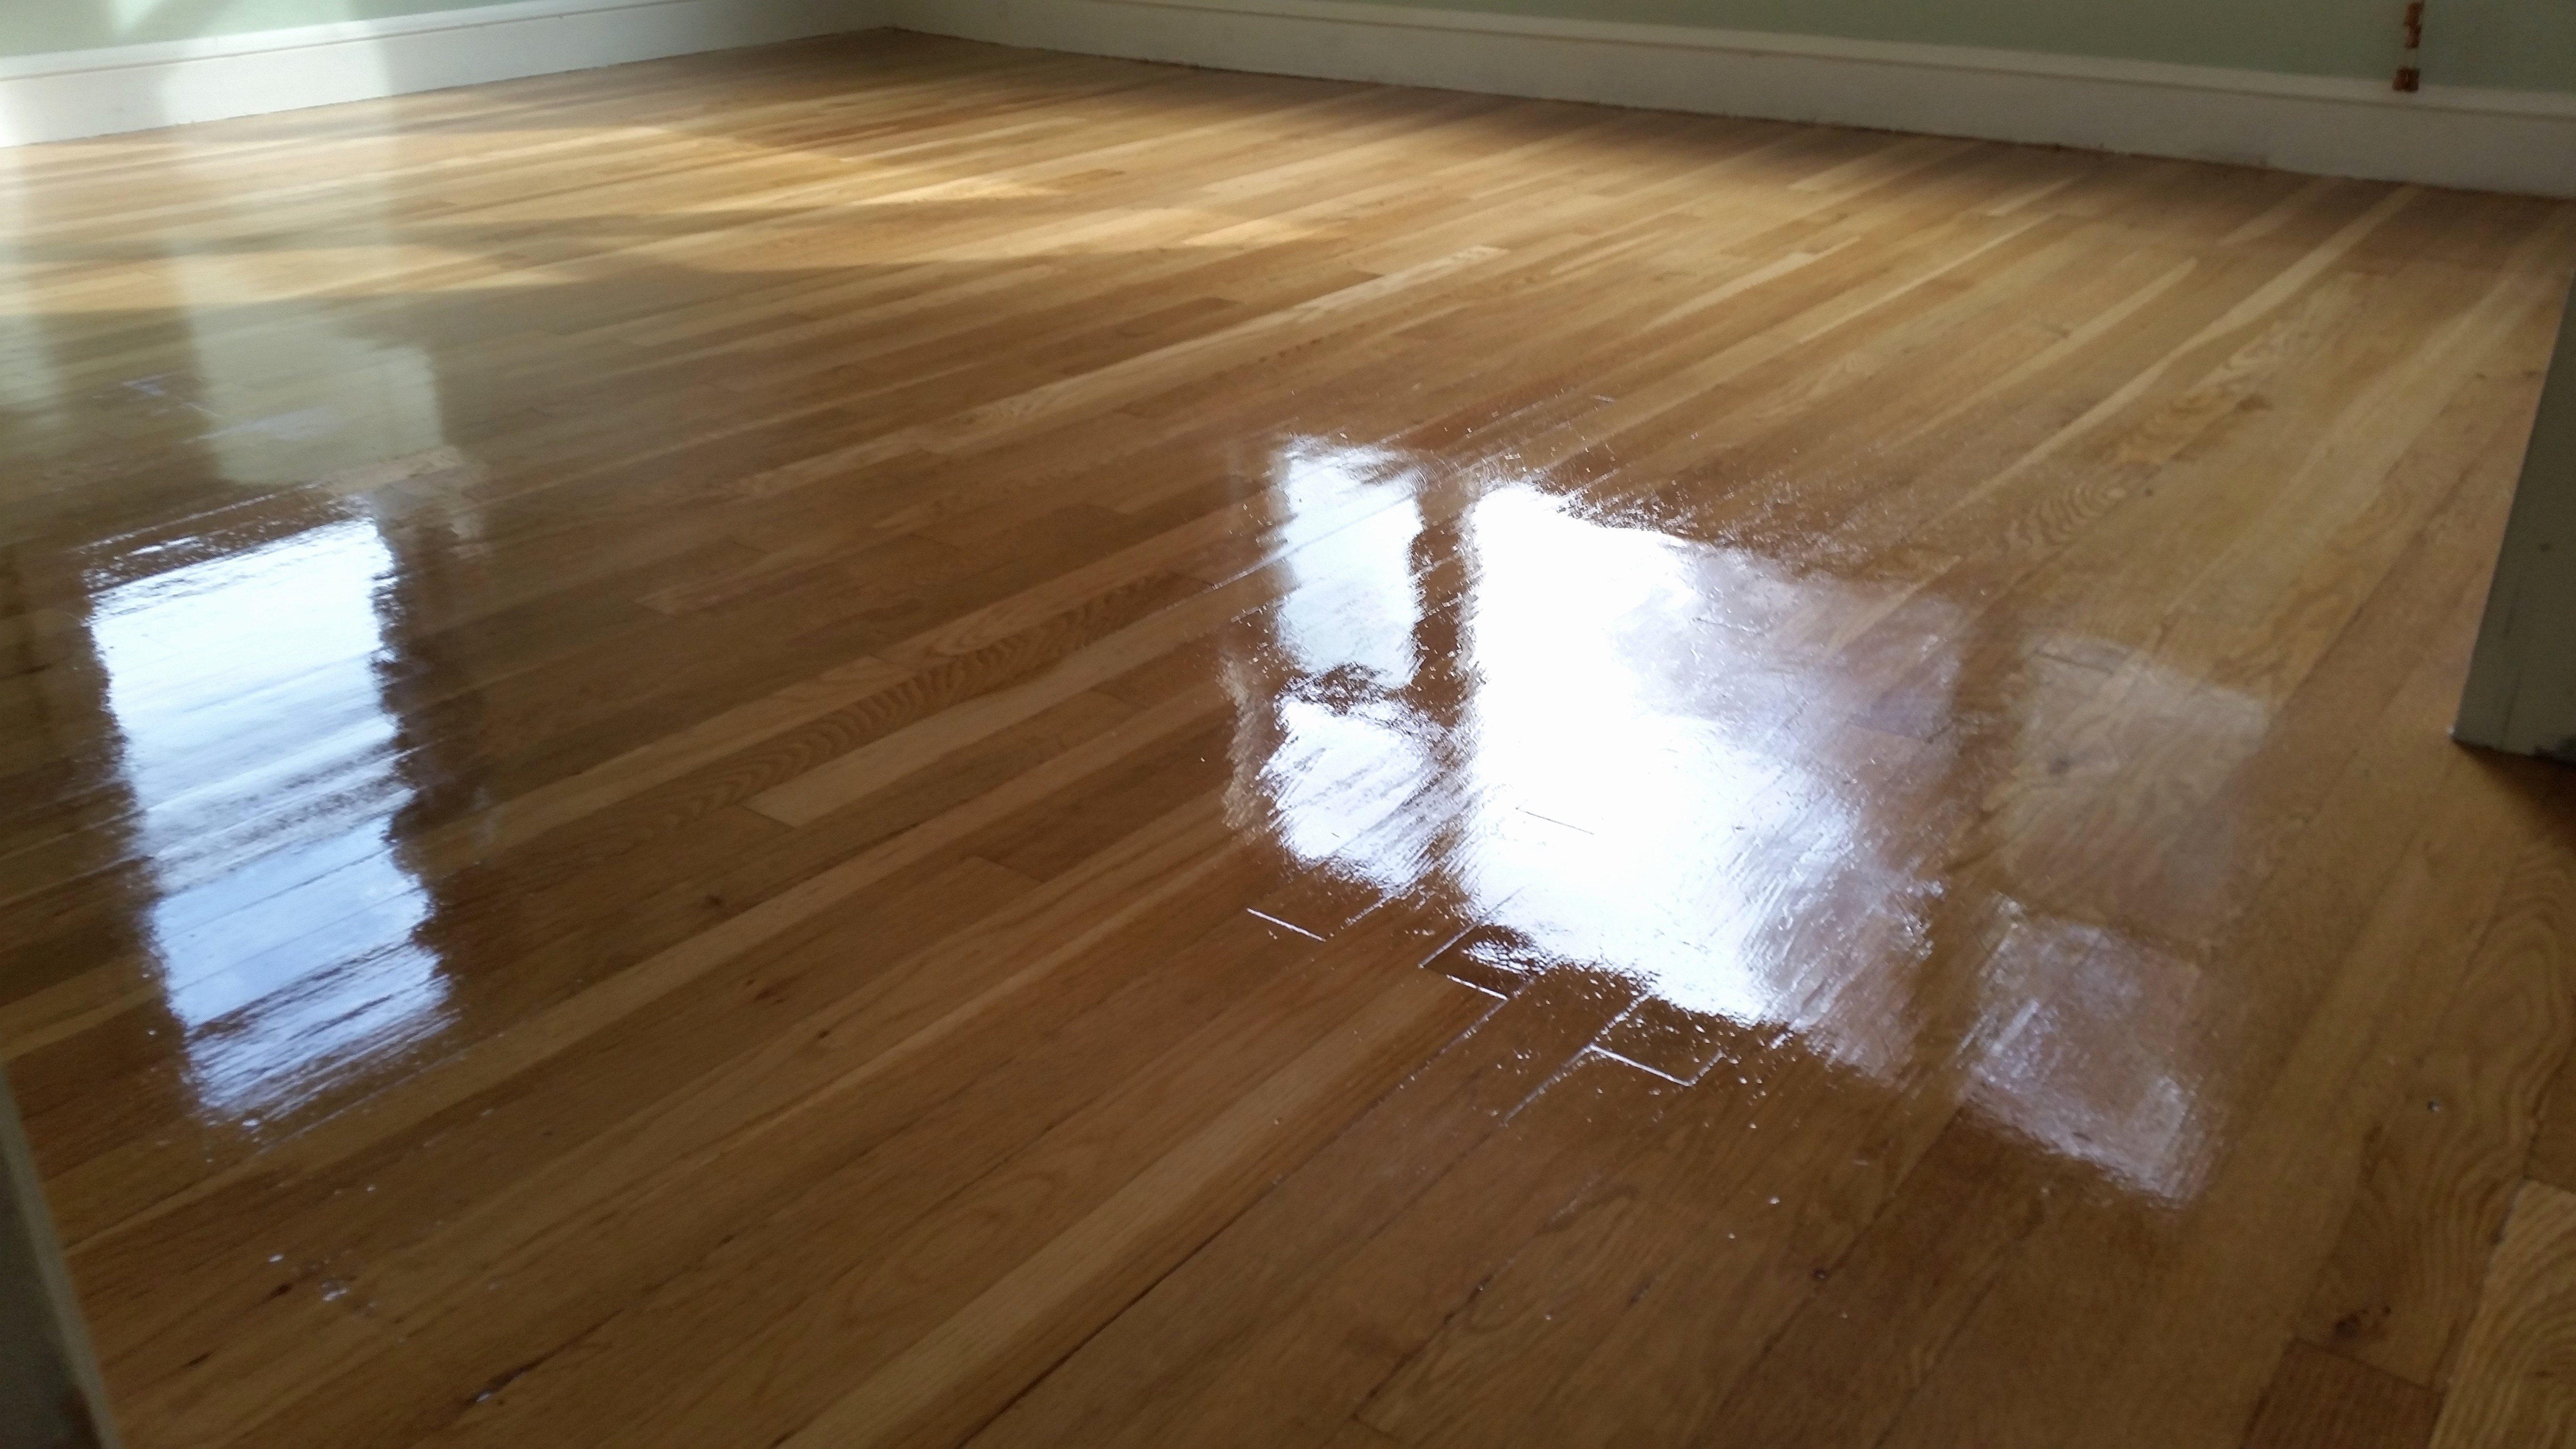 refinishing hardwood floors after carpet of 15 elegant how to refinish hardwood floor image dizpos com inside how to refinish hardwood floor inspirational picture 12 of 50 how to stain hardwood floors best